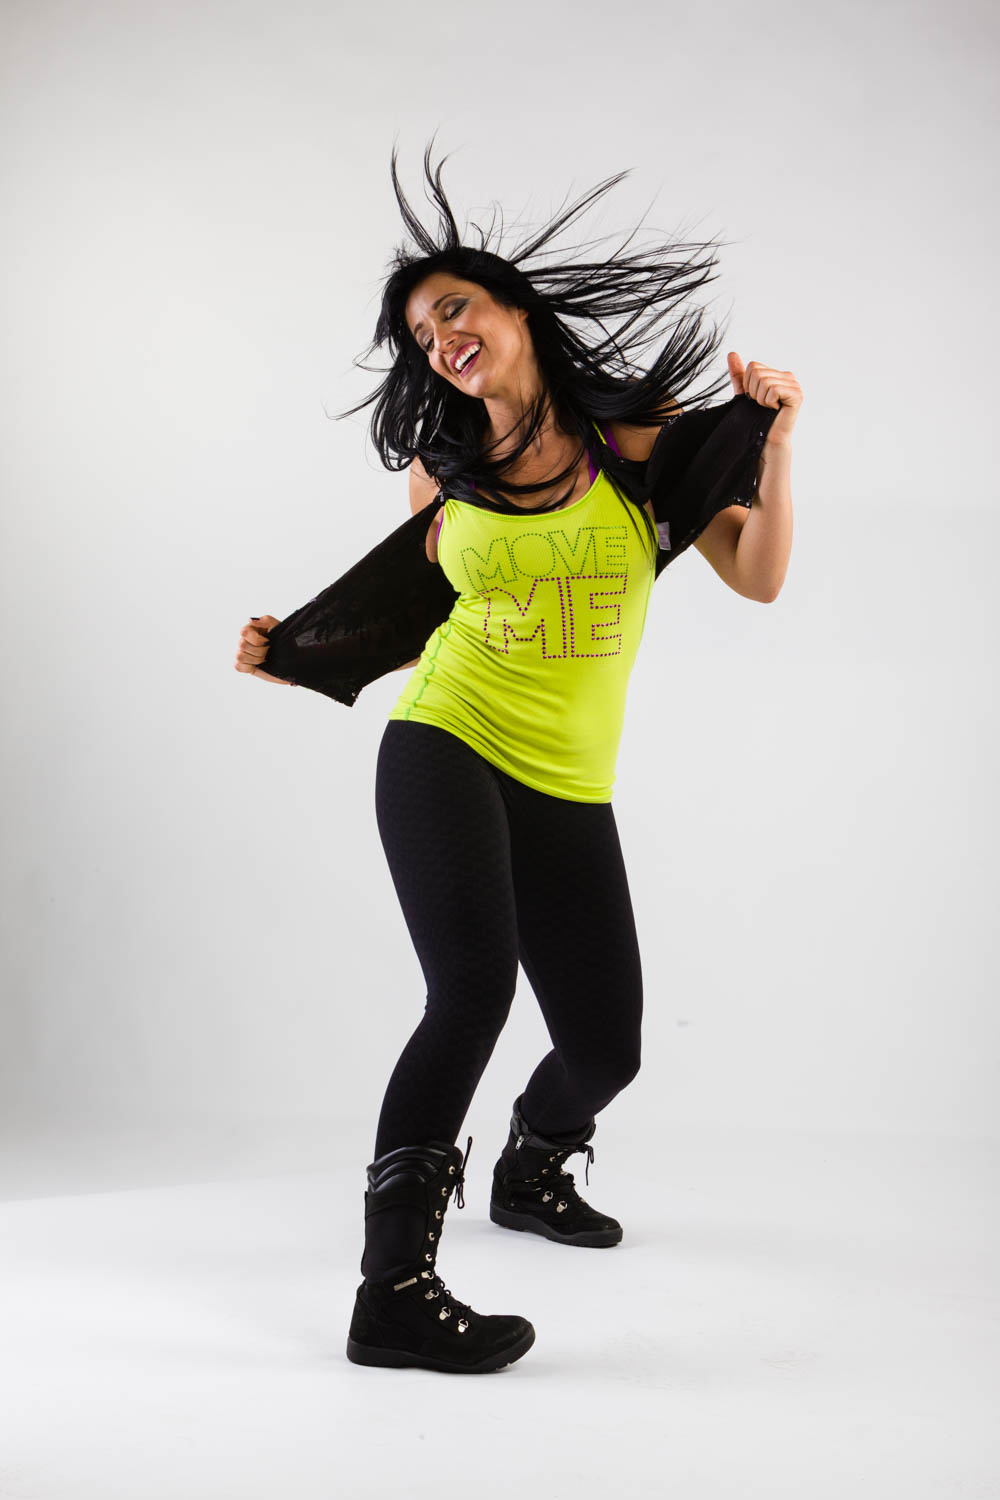 Zumba instructor in studio